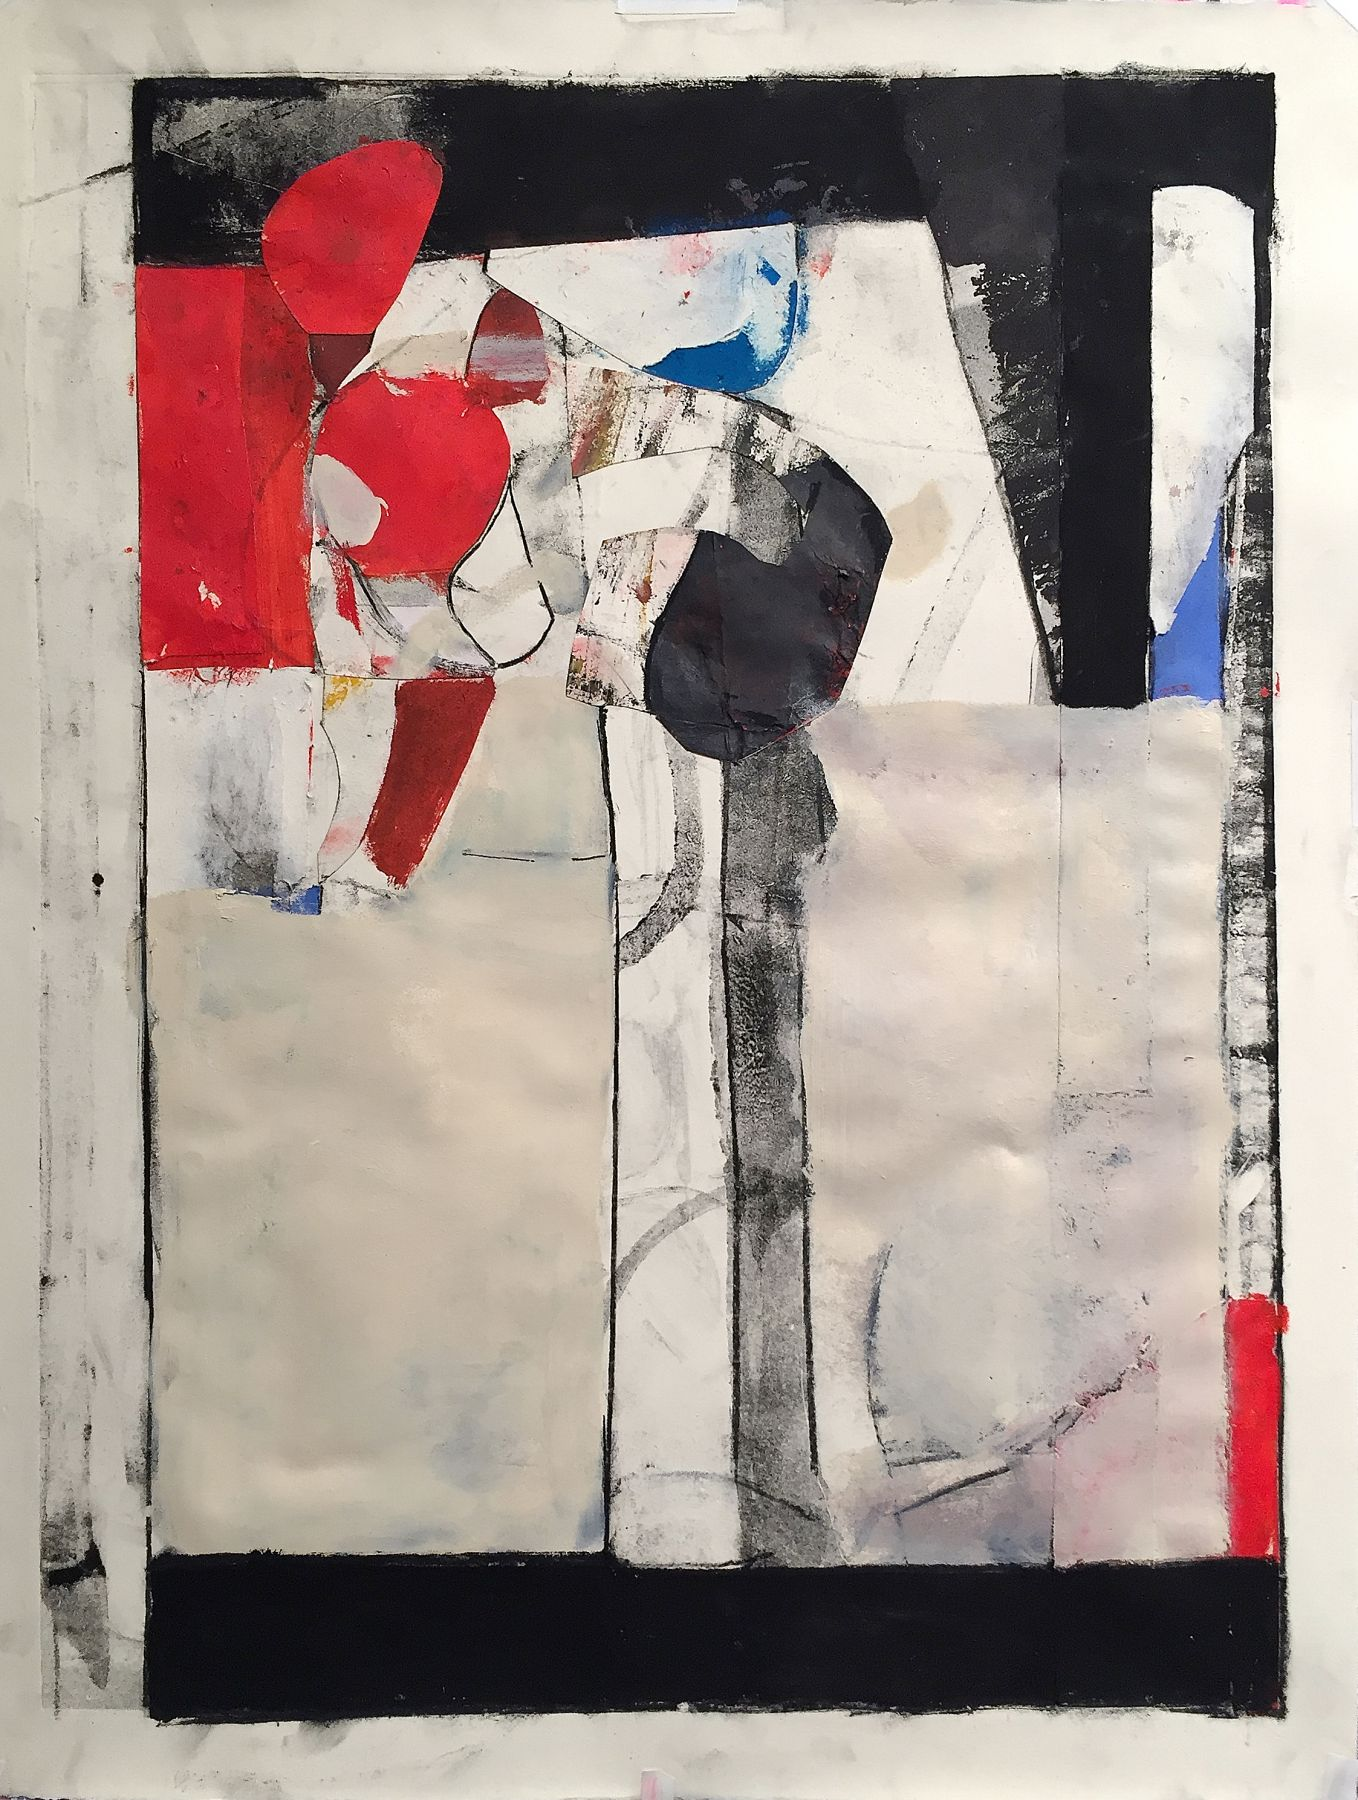 """Robert Szot. Maquiladora. 2017. Monotype collage, mixed media on paper. 26"""" x 20"""""""